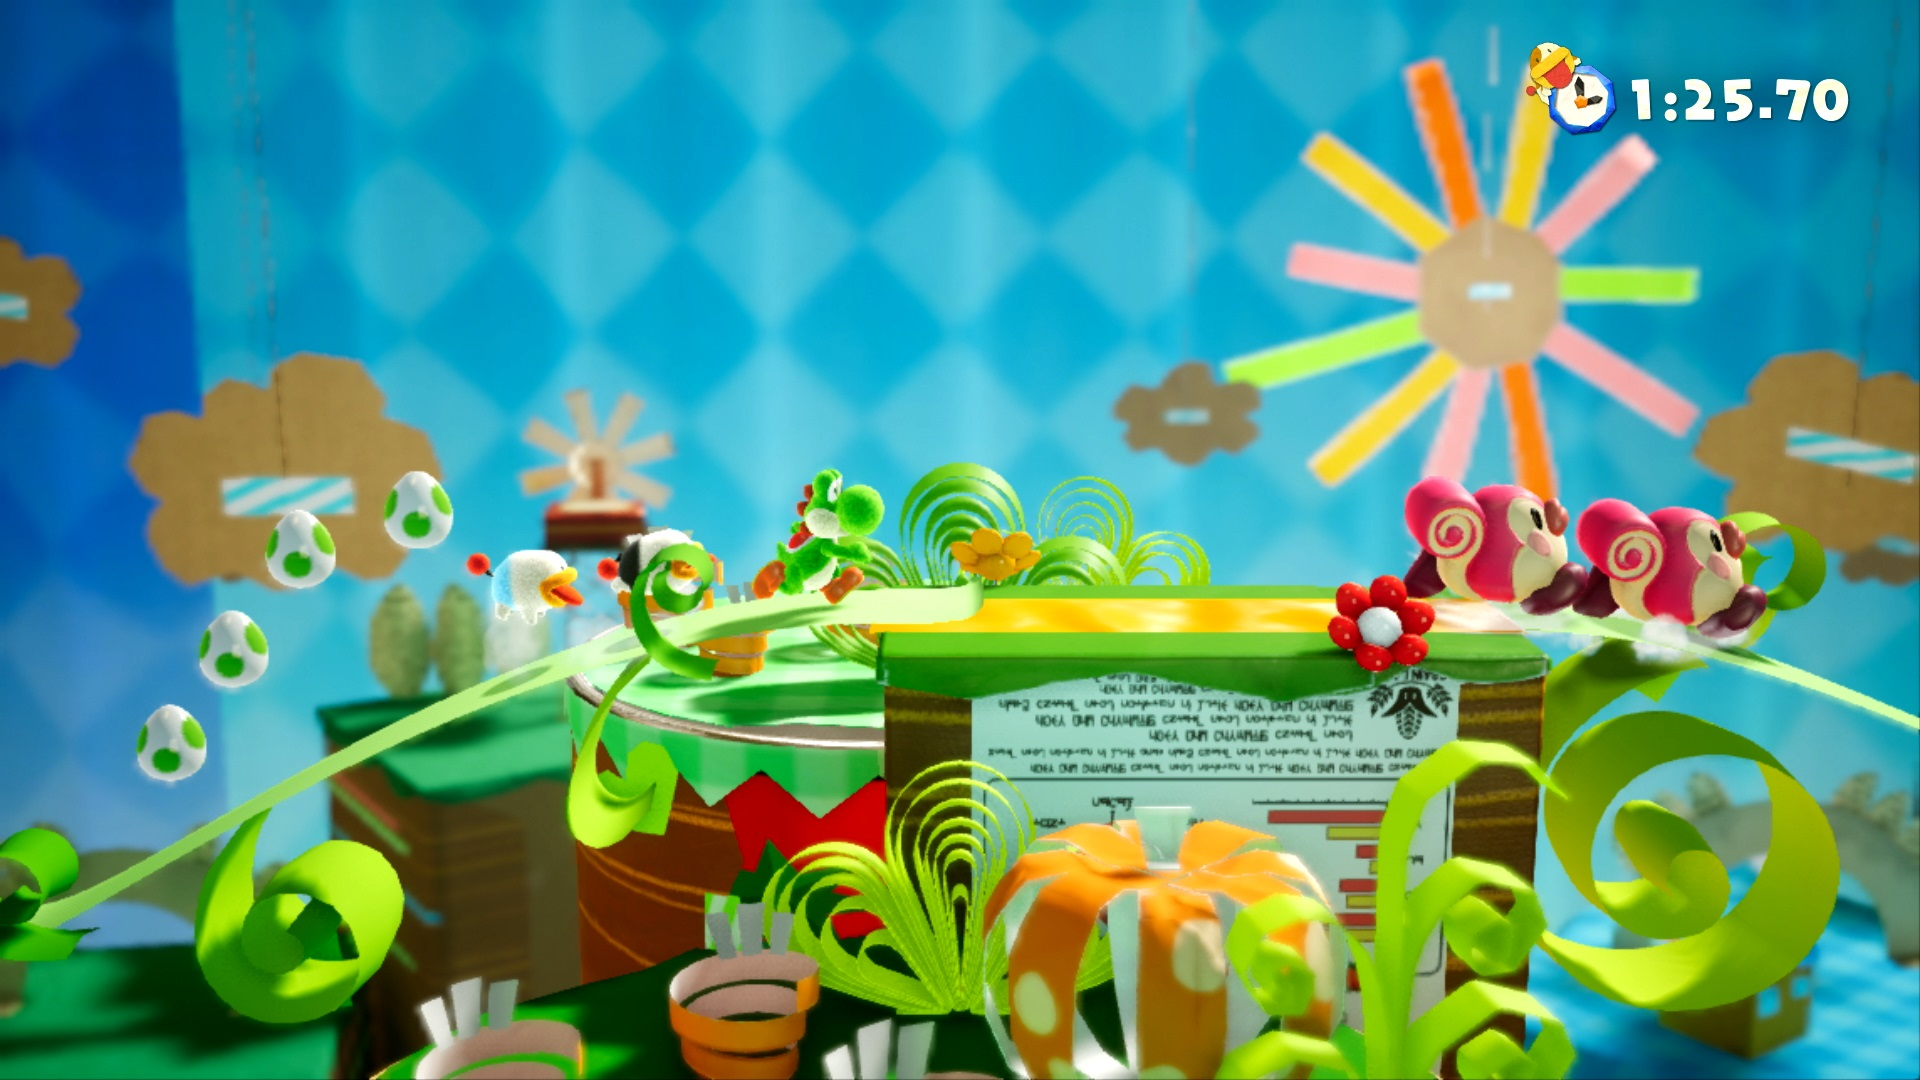 game yoshis crafted world wallpaper 67359